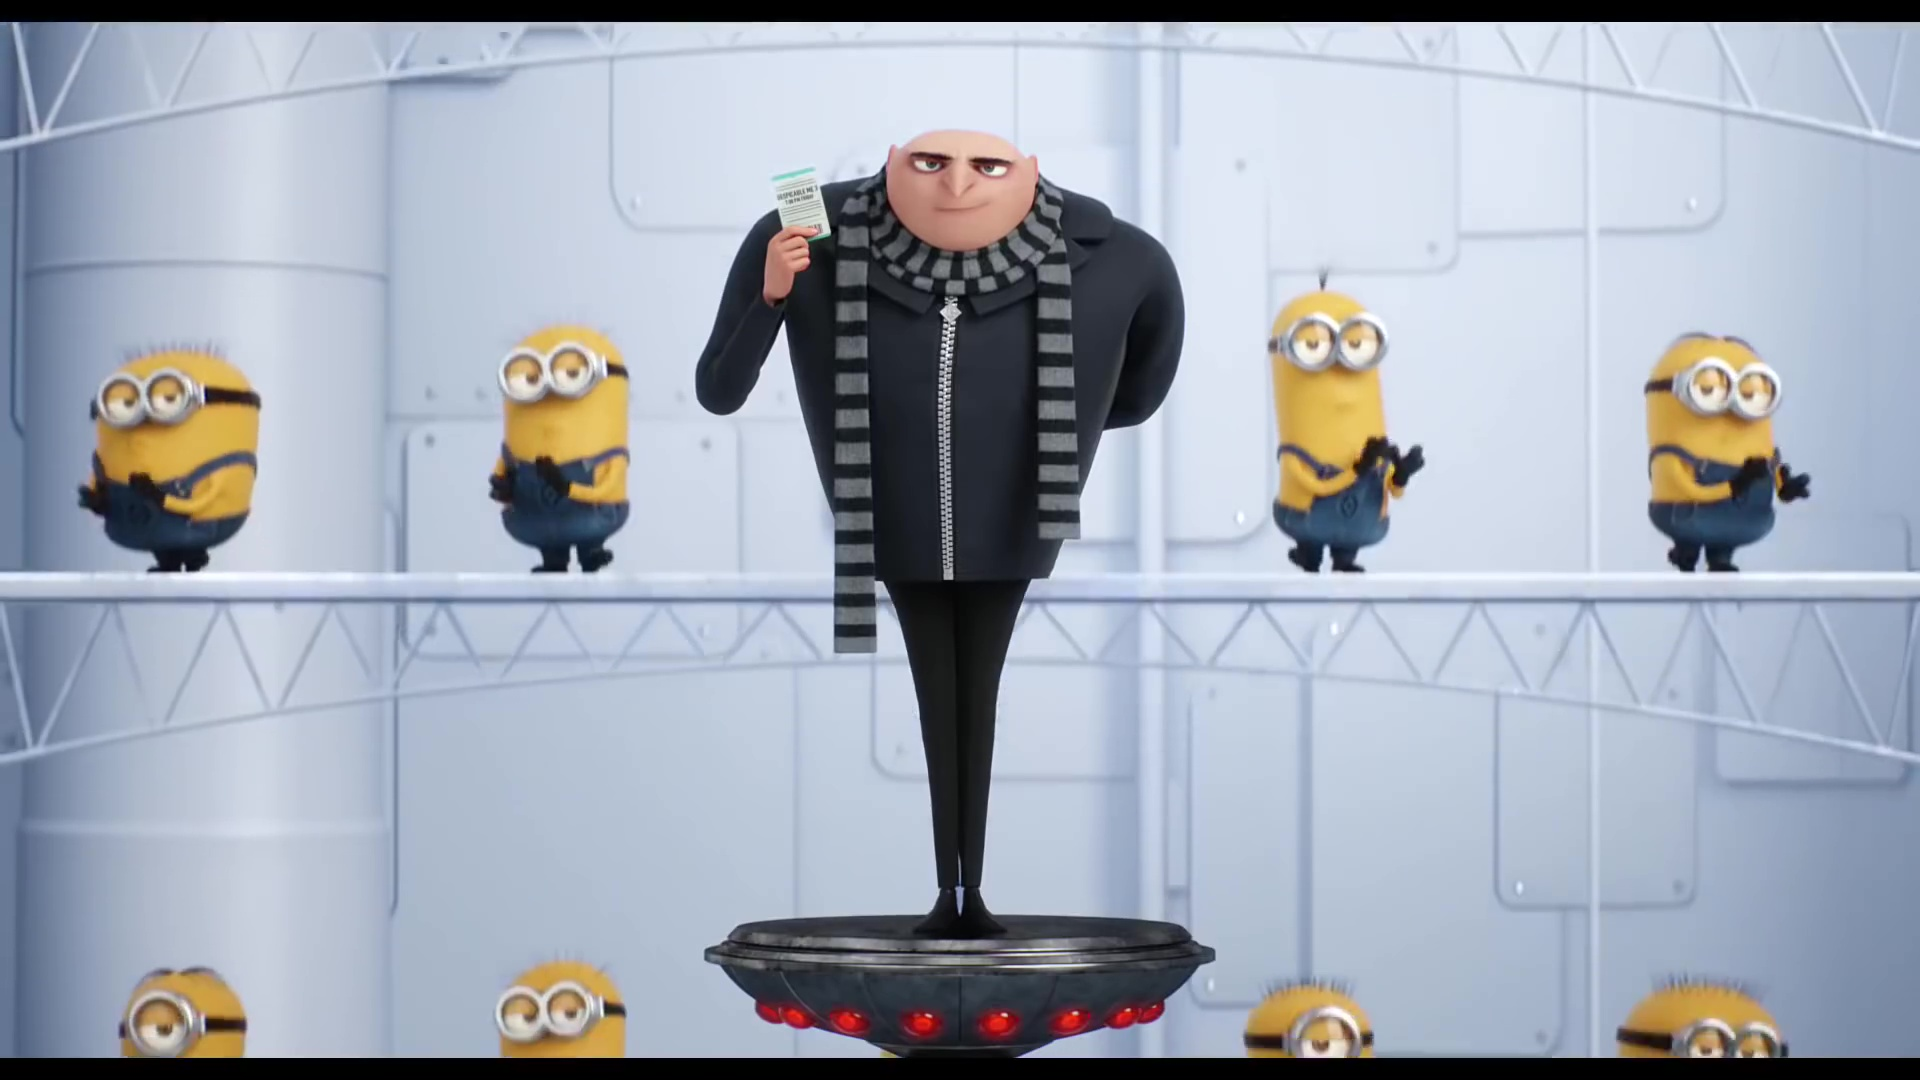 Despicable Me 3 Movie I Can Make Your Hands Clap Teaser Trailer .your hands, clap your hands, listen to the music clap your hands turn around turn around listen to the bed finger family if you are happy and you know clap your hands incy wincy spider( itsy bitsy spider) marry had a little lamb happy birthday song www.youtube.com/user/videogyan follow us. i can make your hands clap